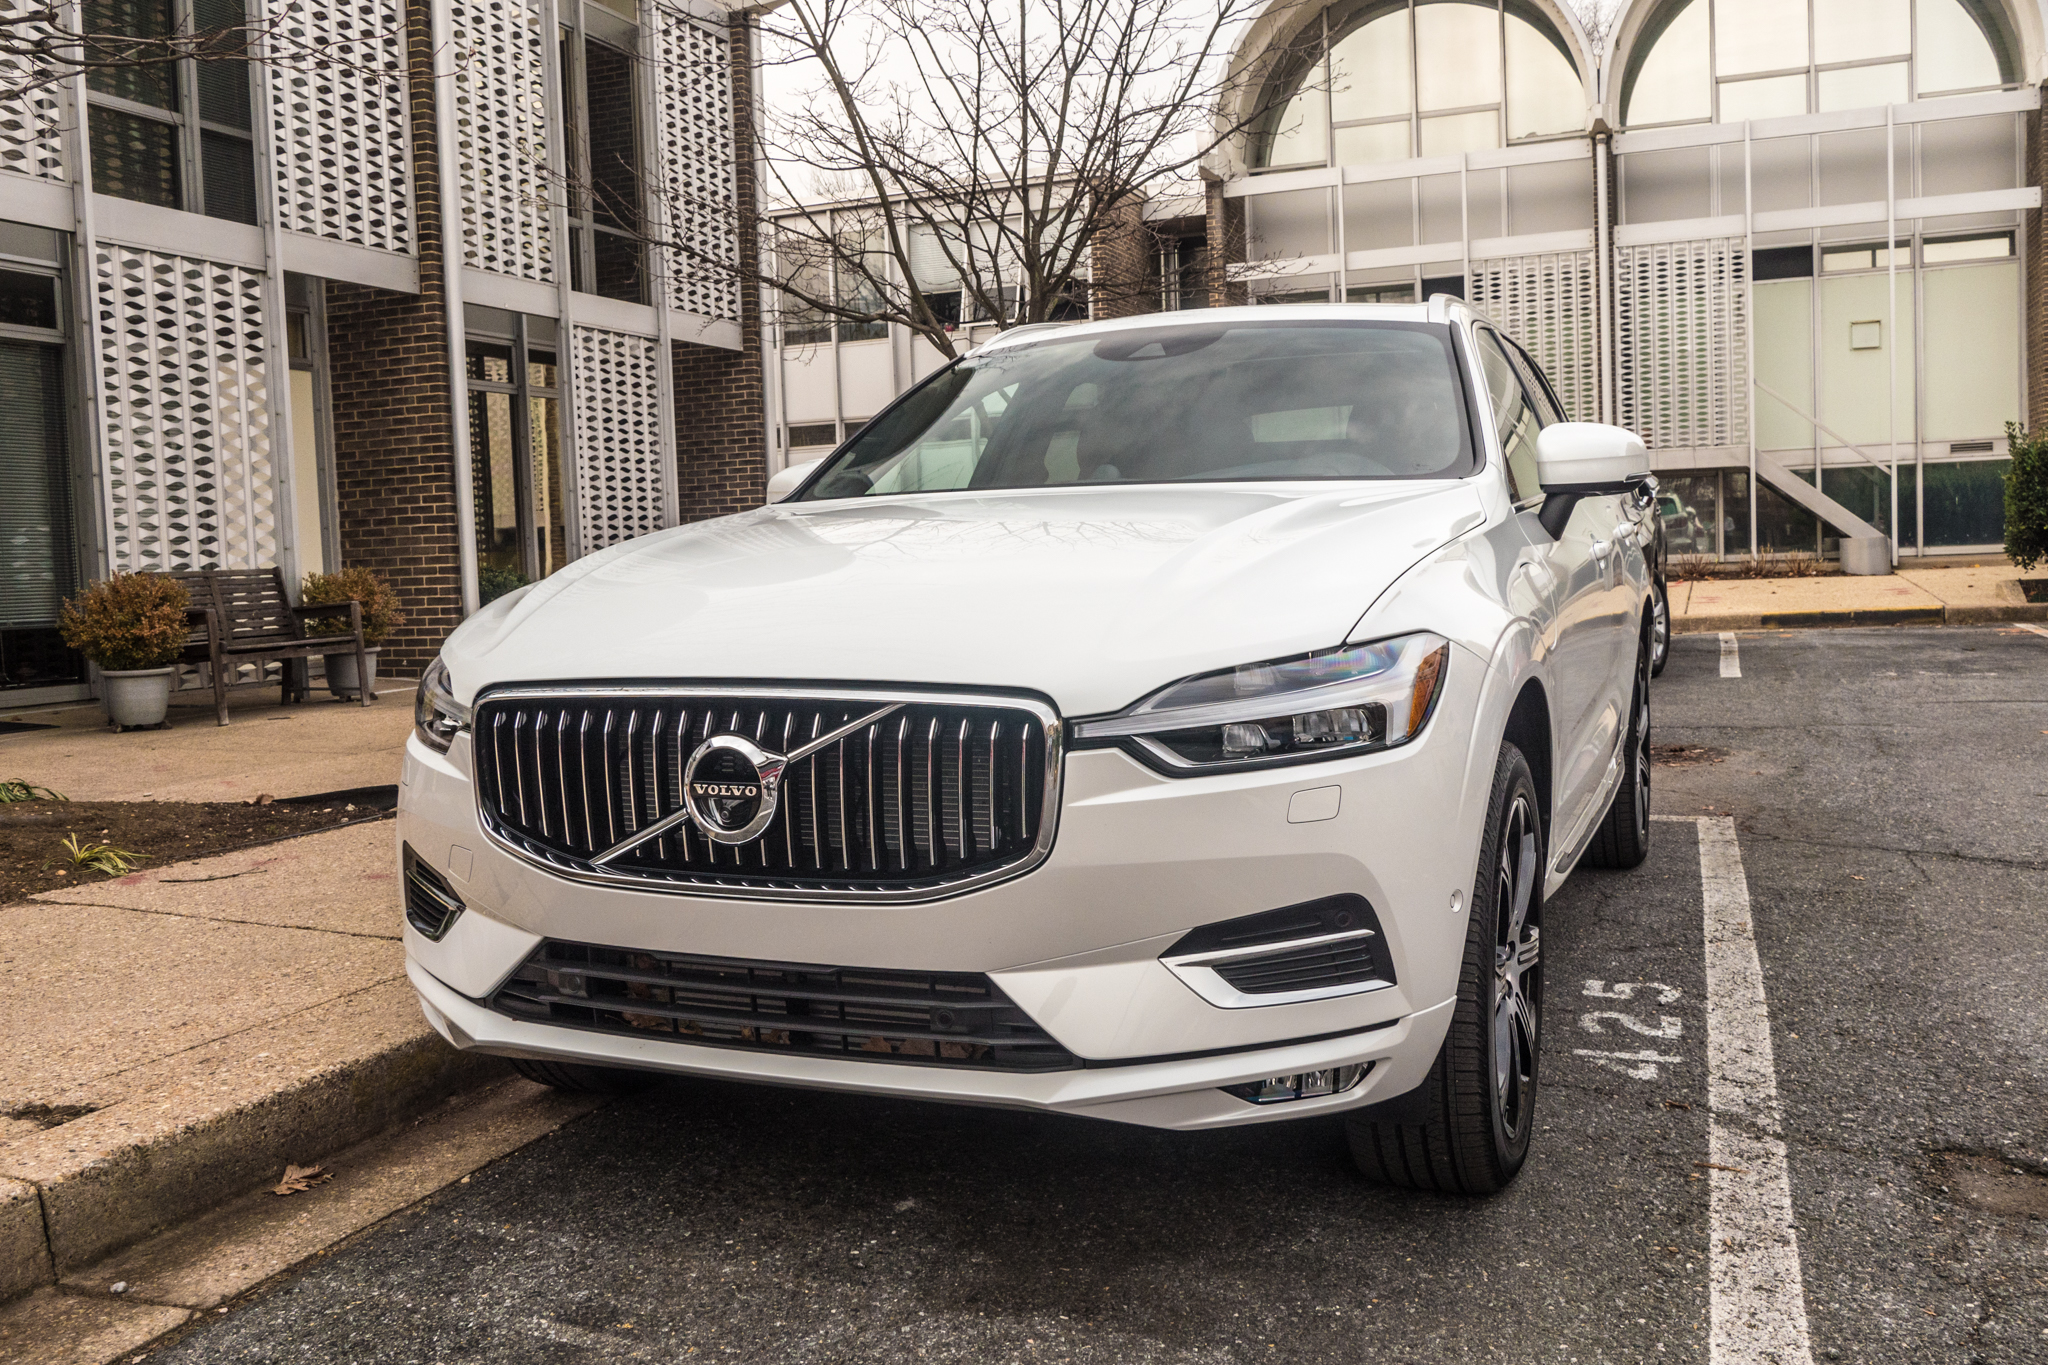 test original driver and s review eawd volvo in first reviews drive plug hybrid car photo